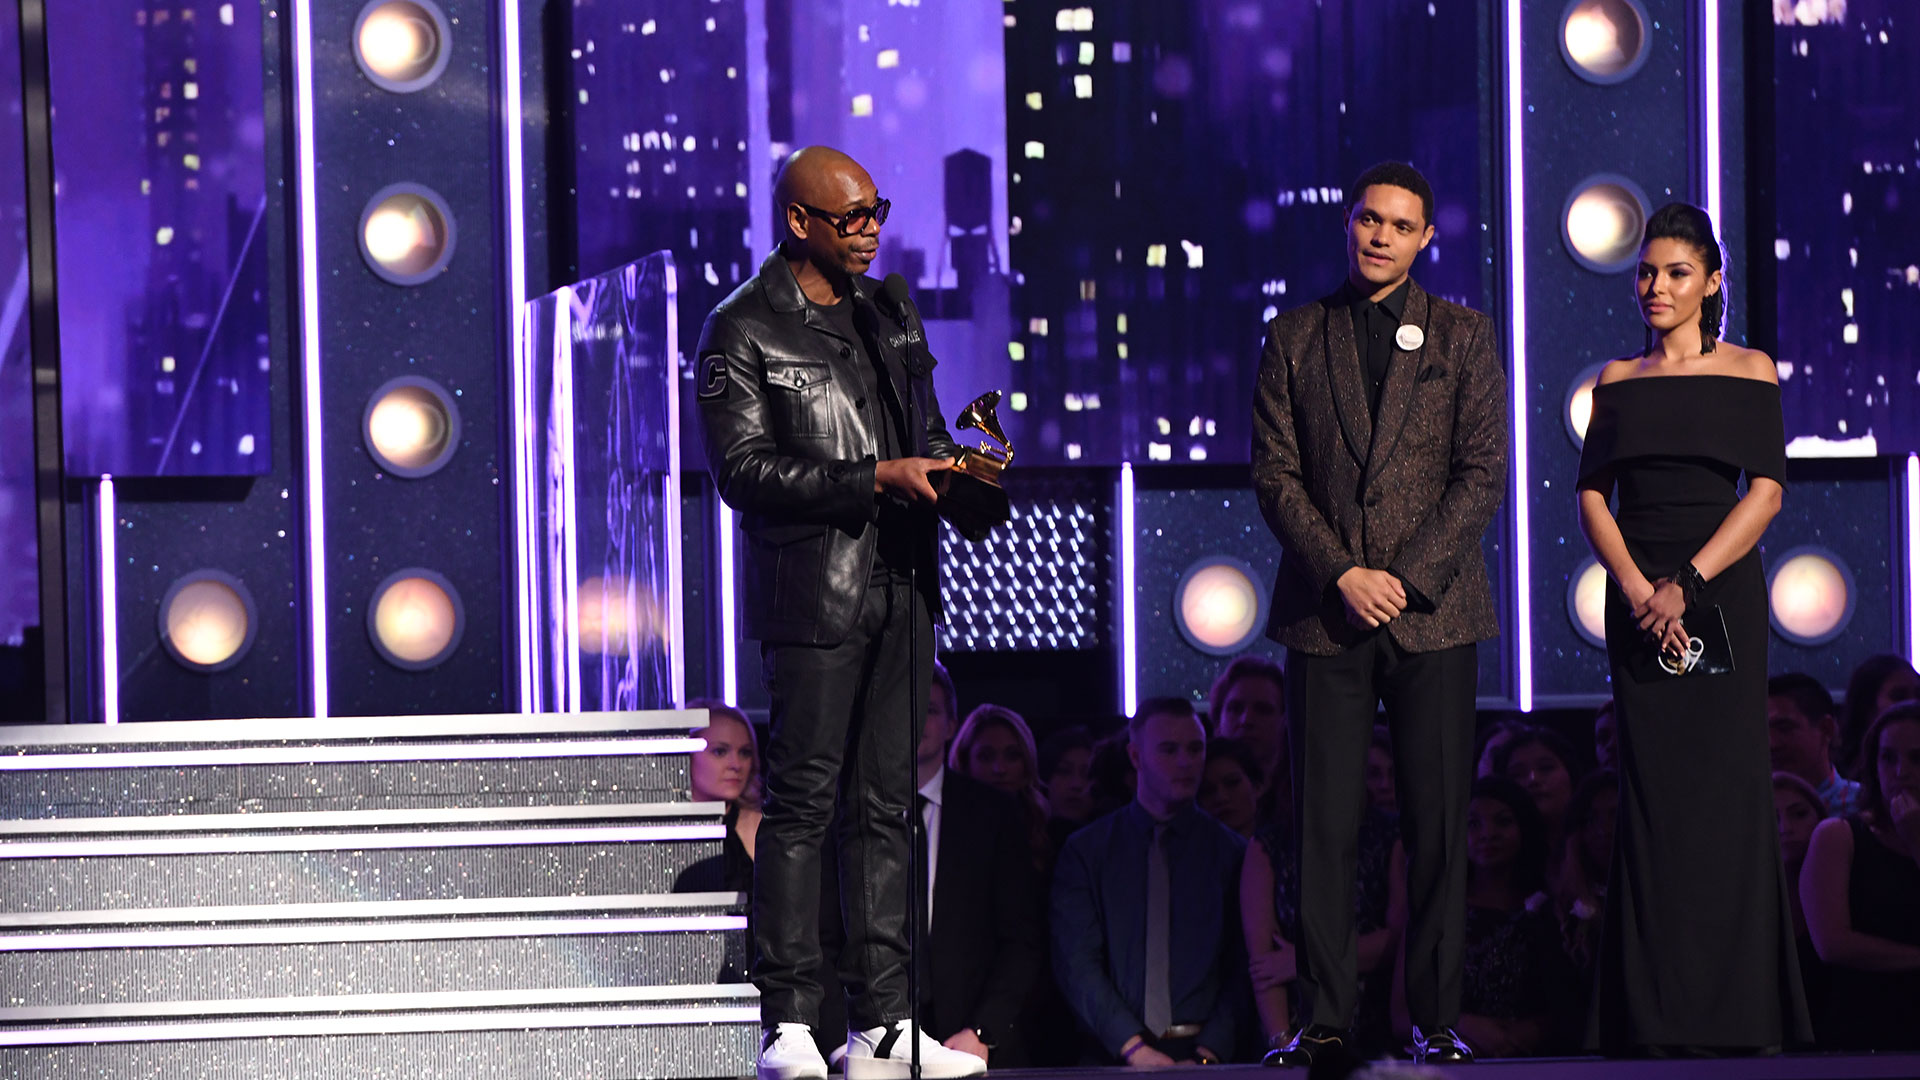 Dave Chappelle wins Best Comedy Album for The Age of Spin and Deep in the Heart of Texas at the 60th Annual GRAMMY Awards.